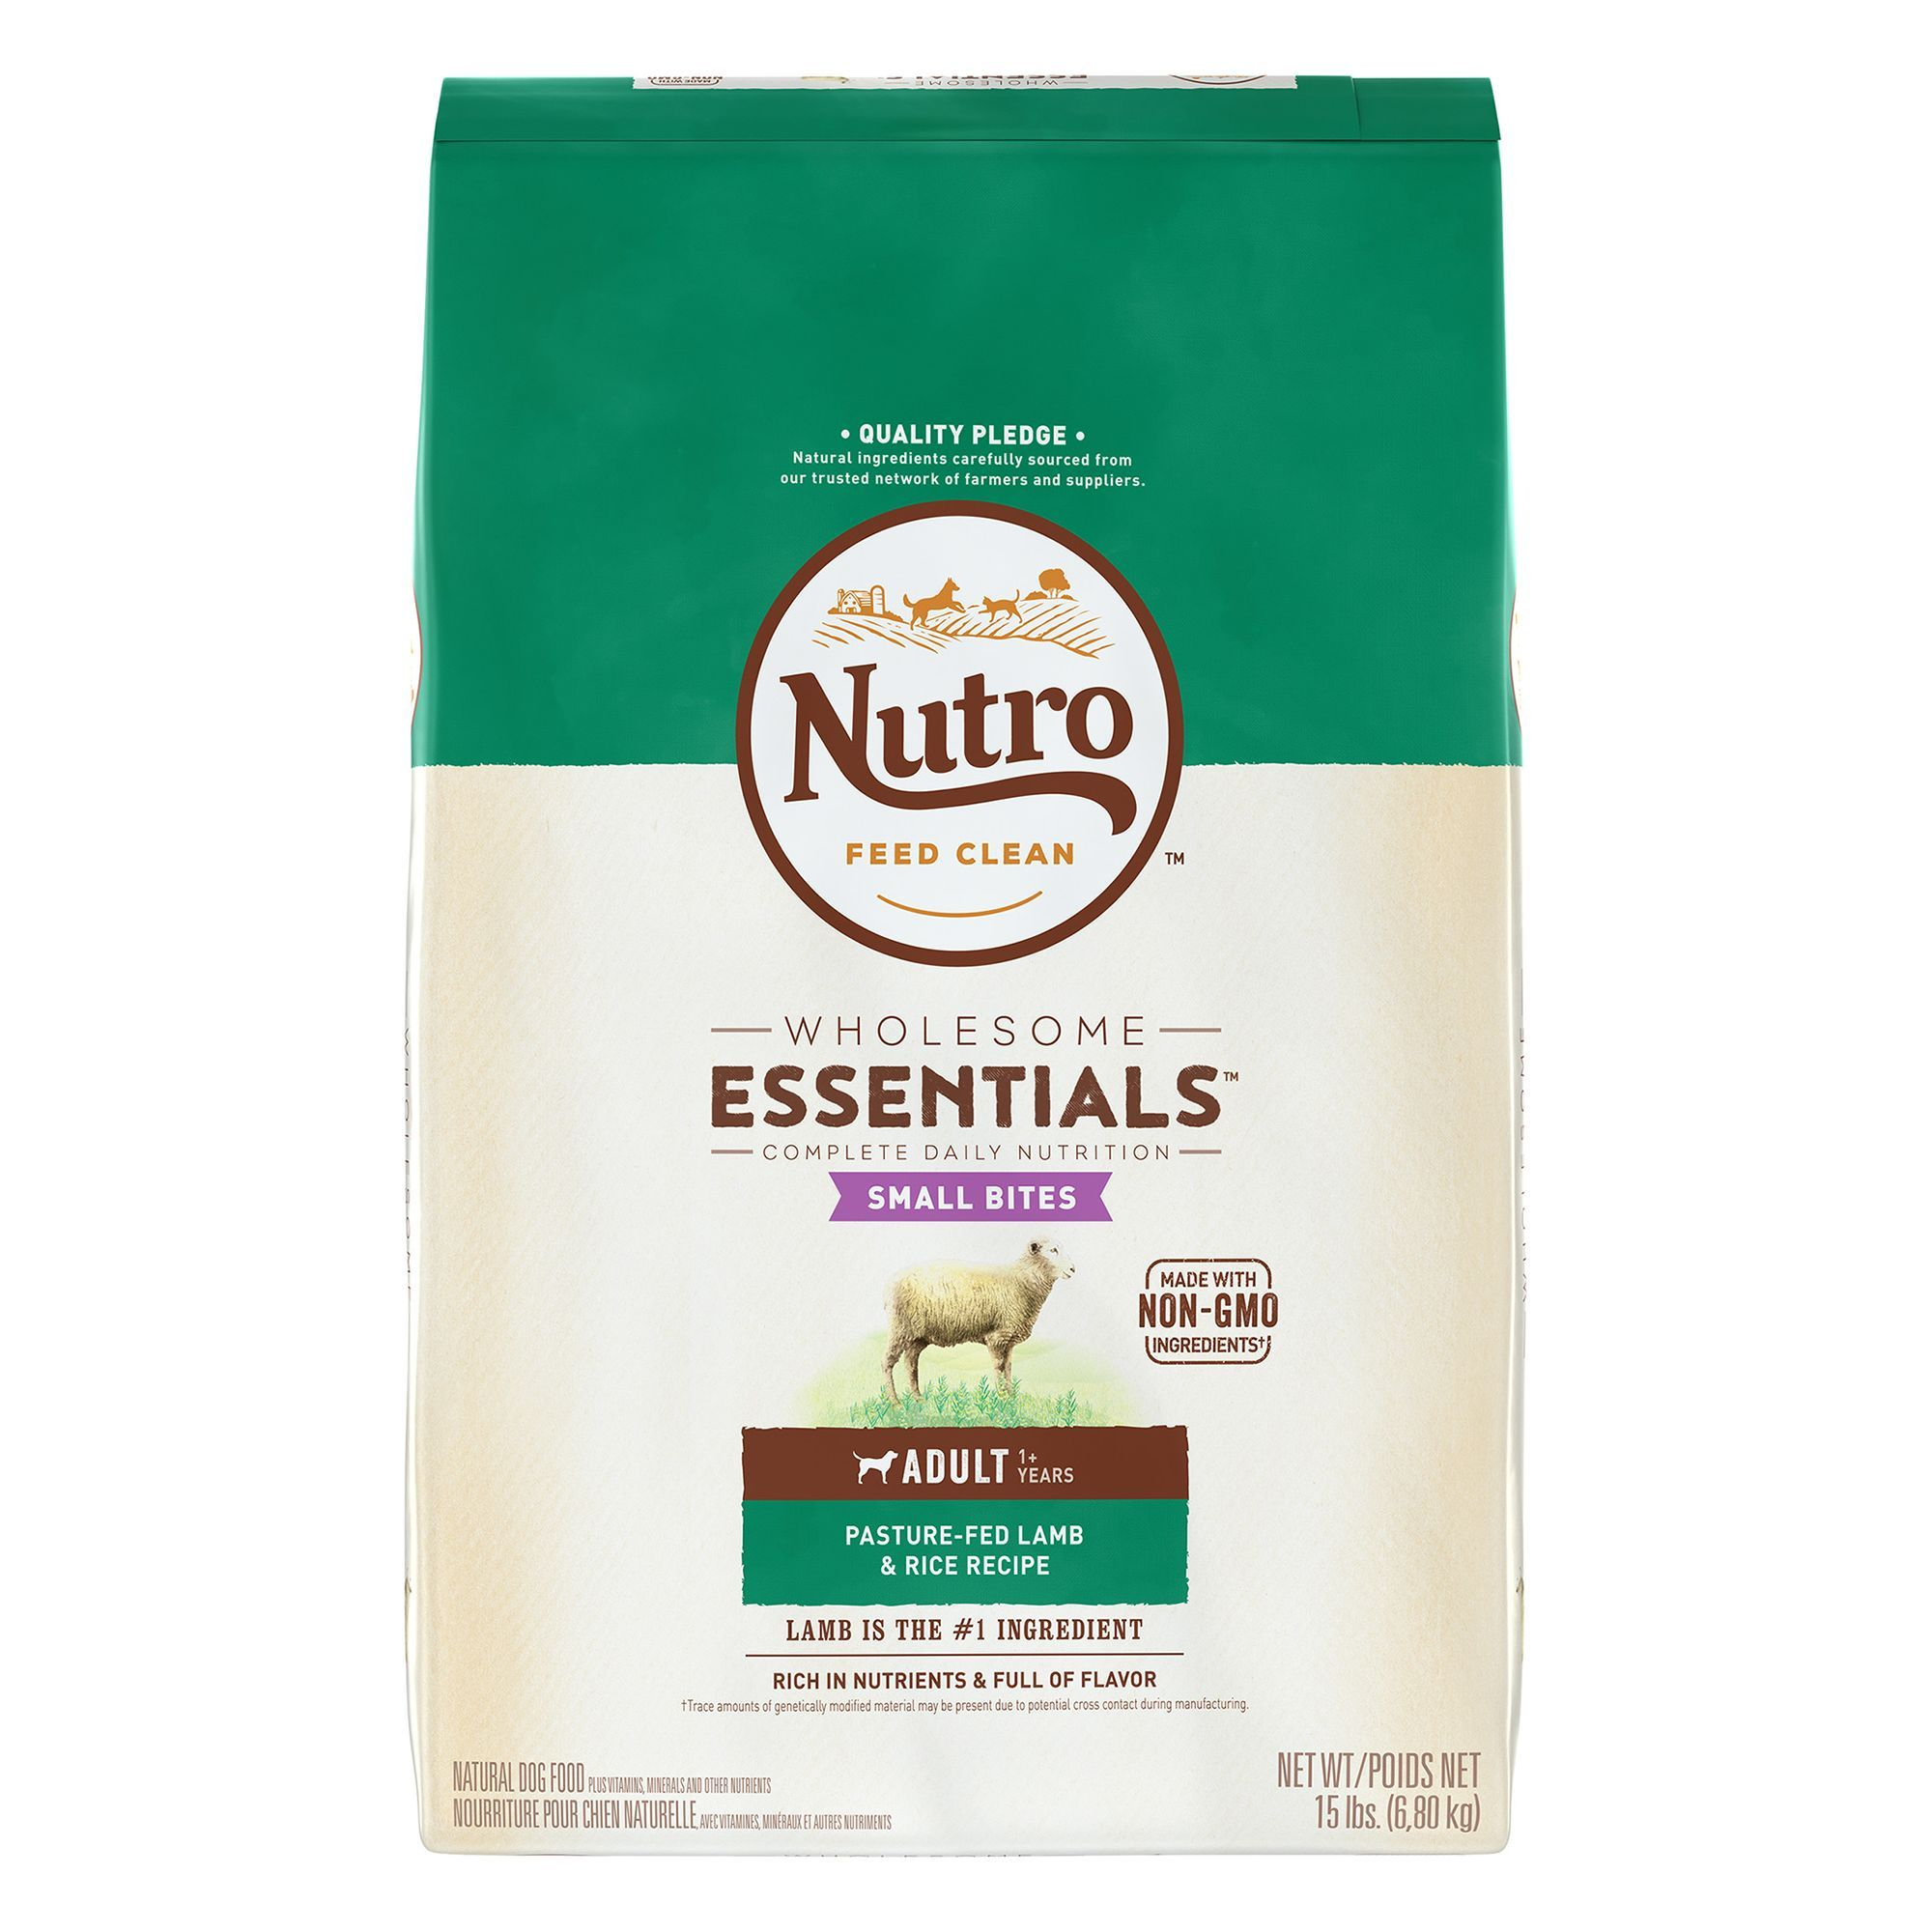 Nutro Wholesome Essentials Small Bites Adult Dog Food Natural